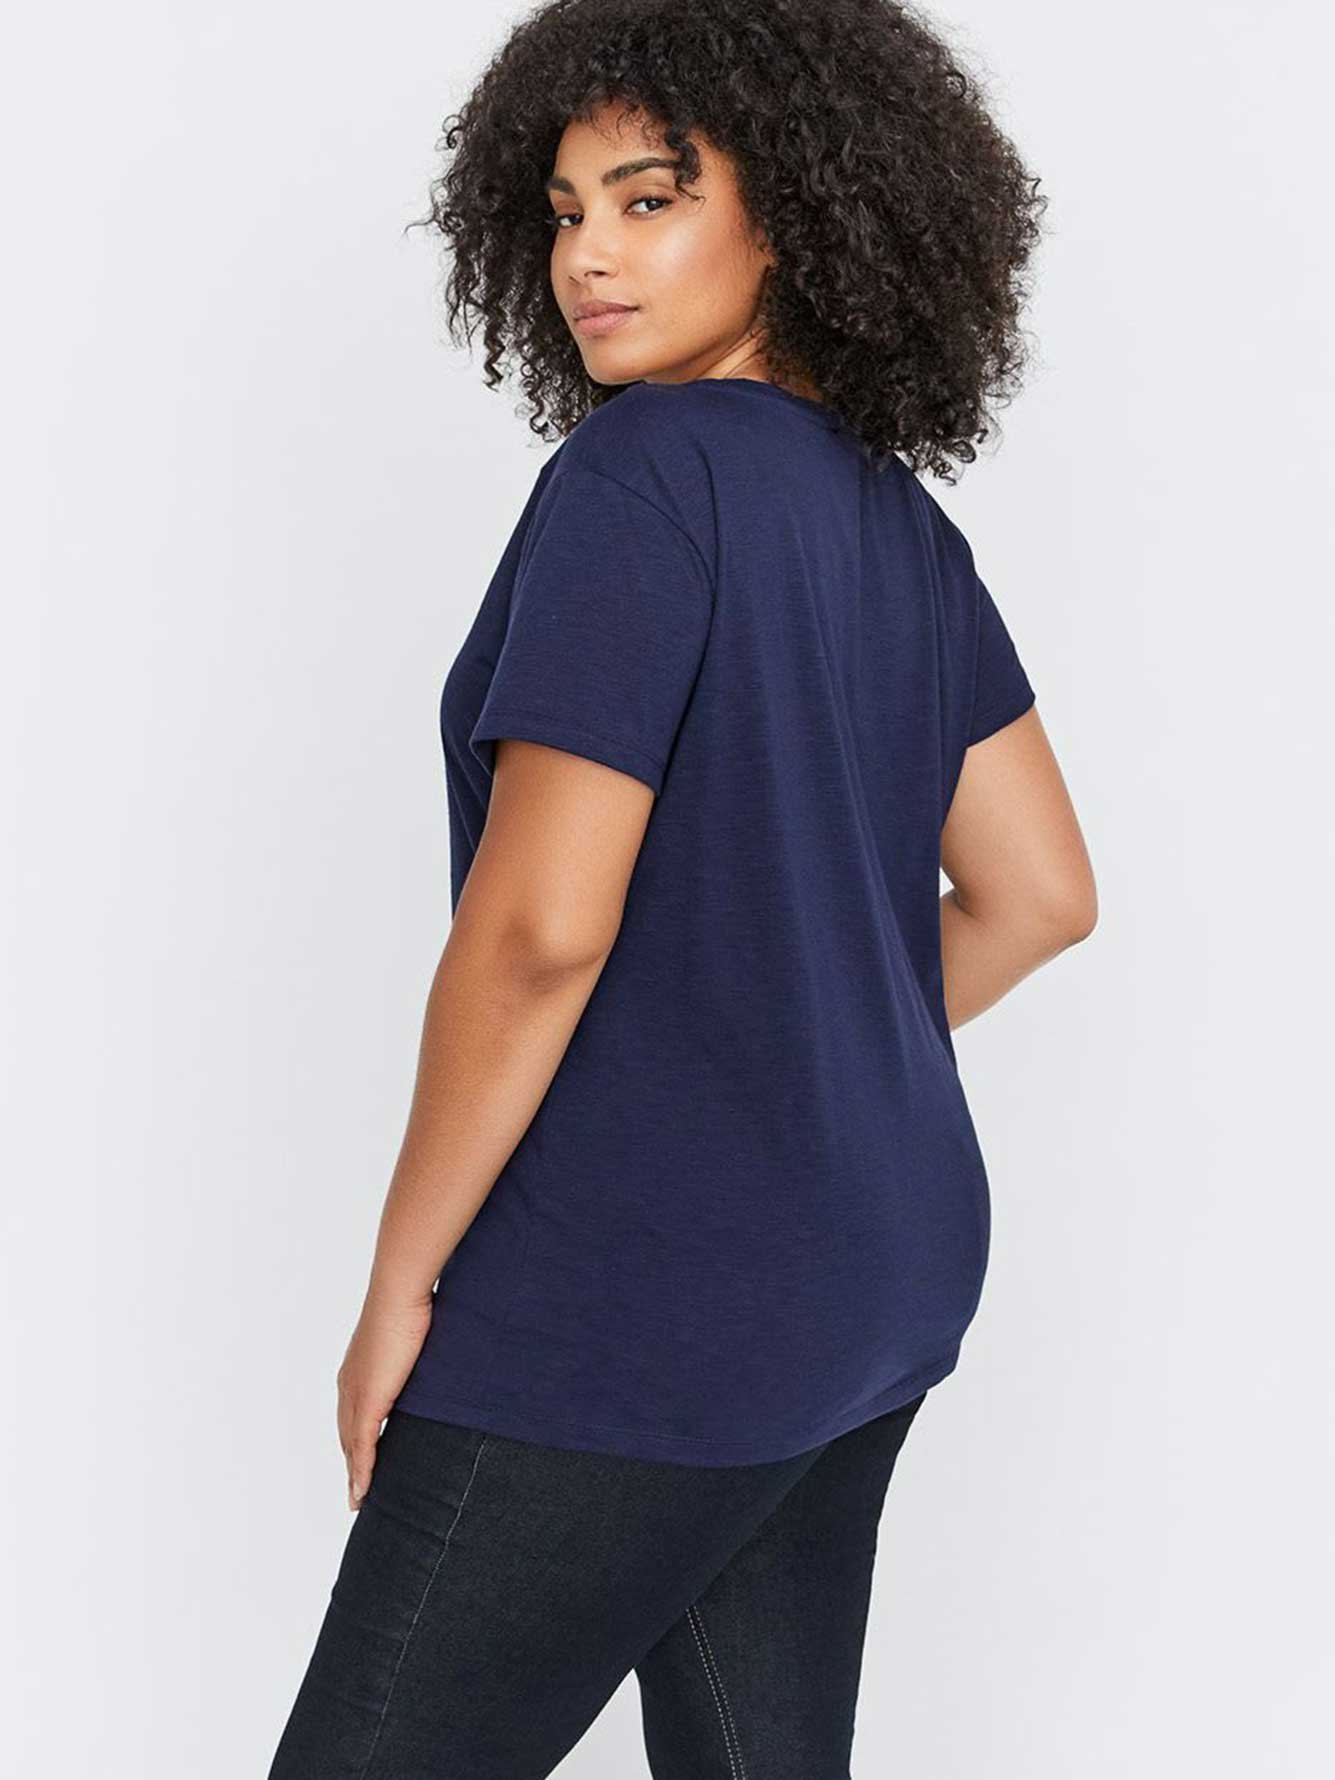 Graphic Scoop-Neck Essential Boyfriend T-Shirt - L&L